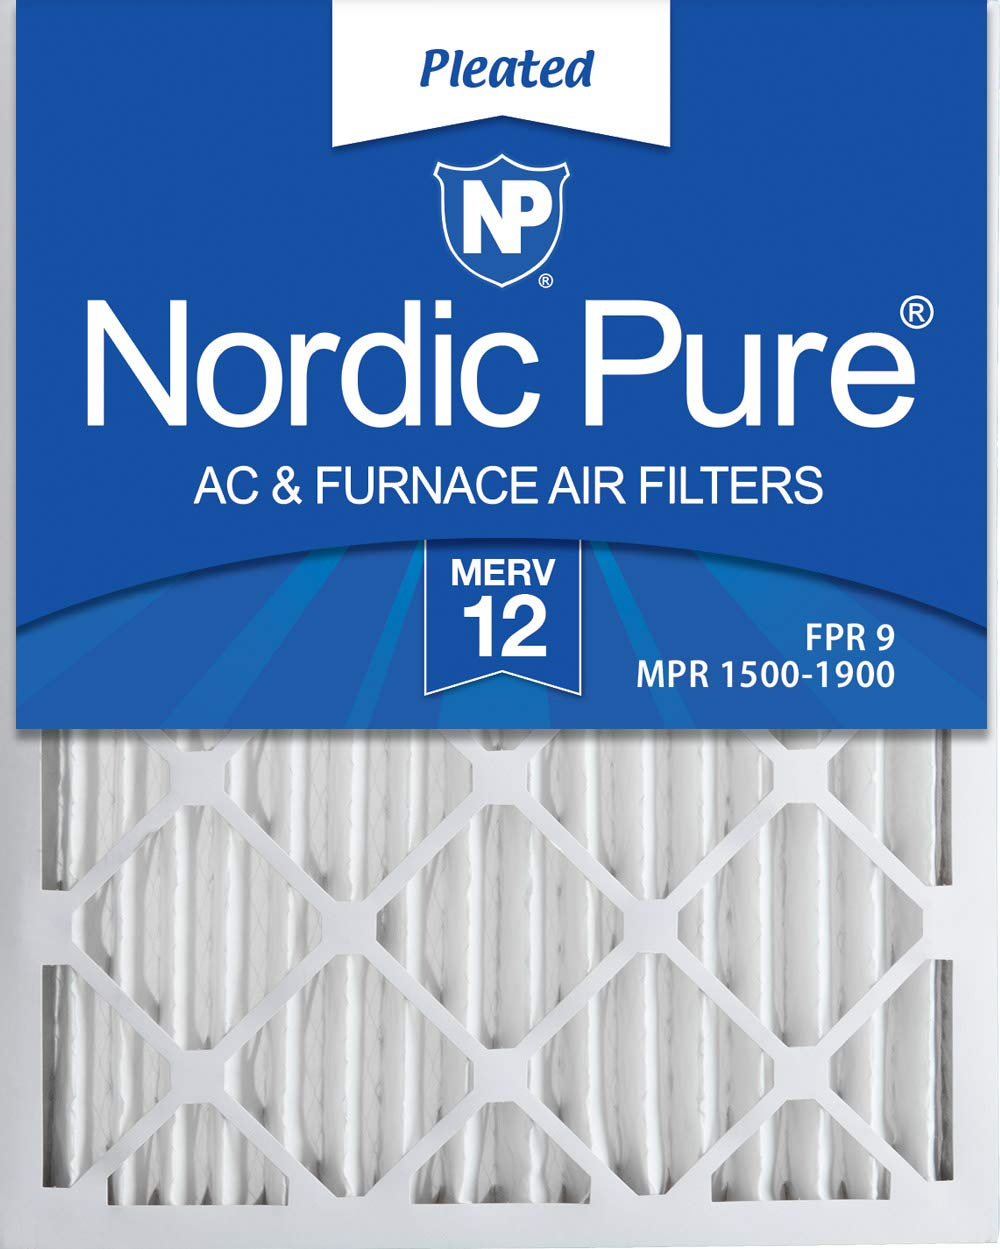 Nordic Pure 16x25x2 MERV 12 Pleated AC Furnace Air Filters 3 Pack, 3 PACK, 3 PACK by Nordic Pure